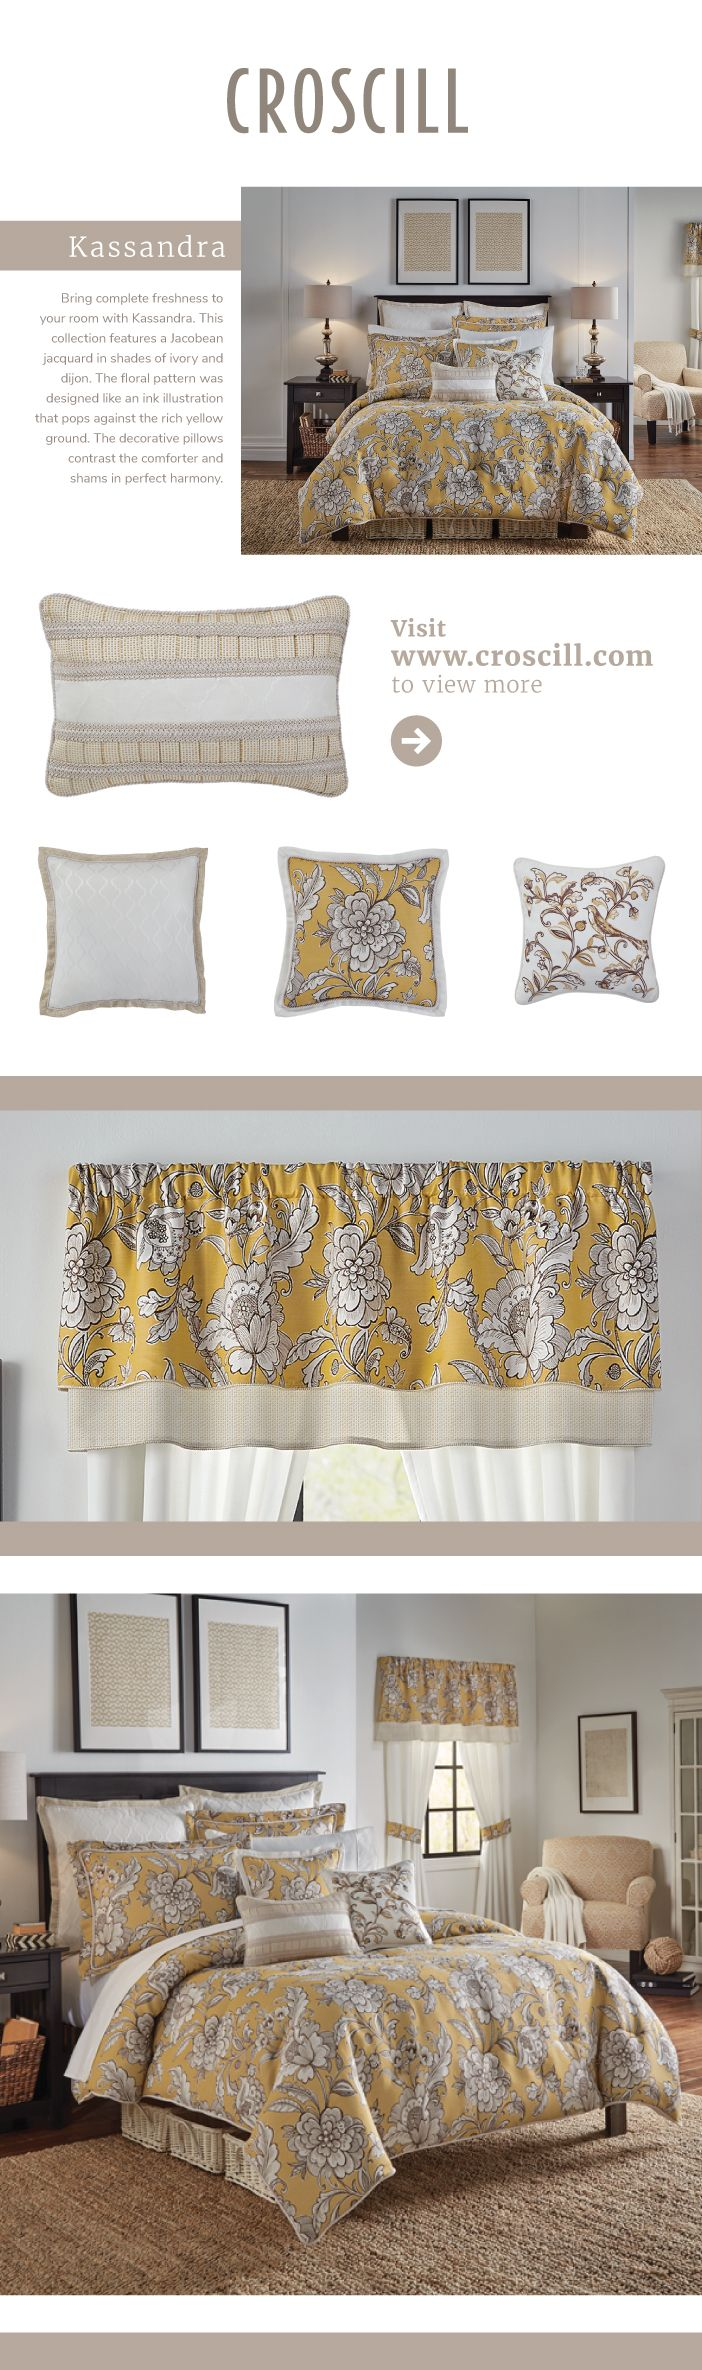 Bedding jardin collection bedding collections bed amp bath macy s - Kassandra Bedding Collection Croscill